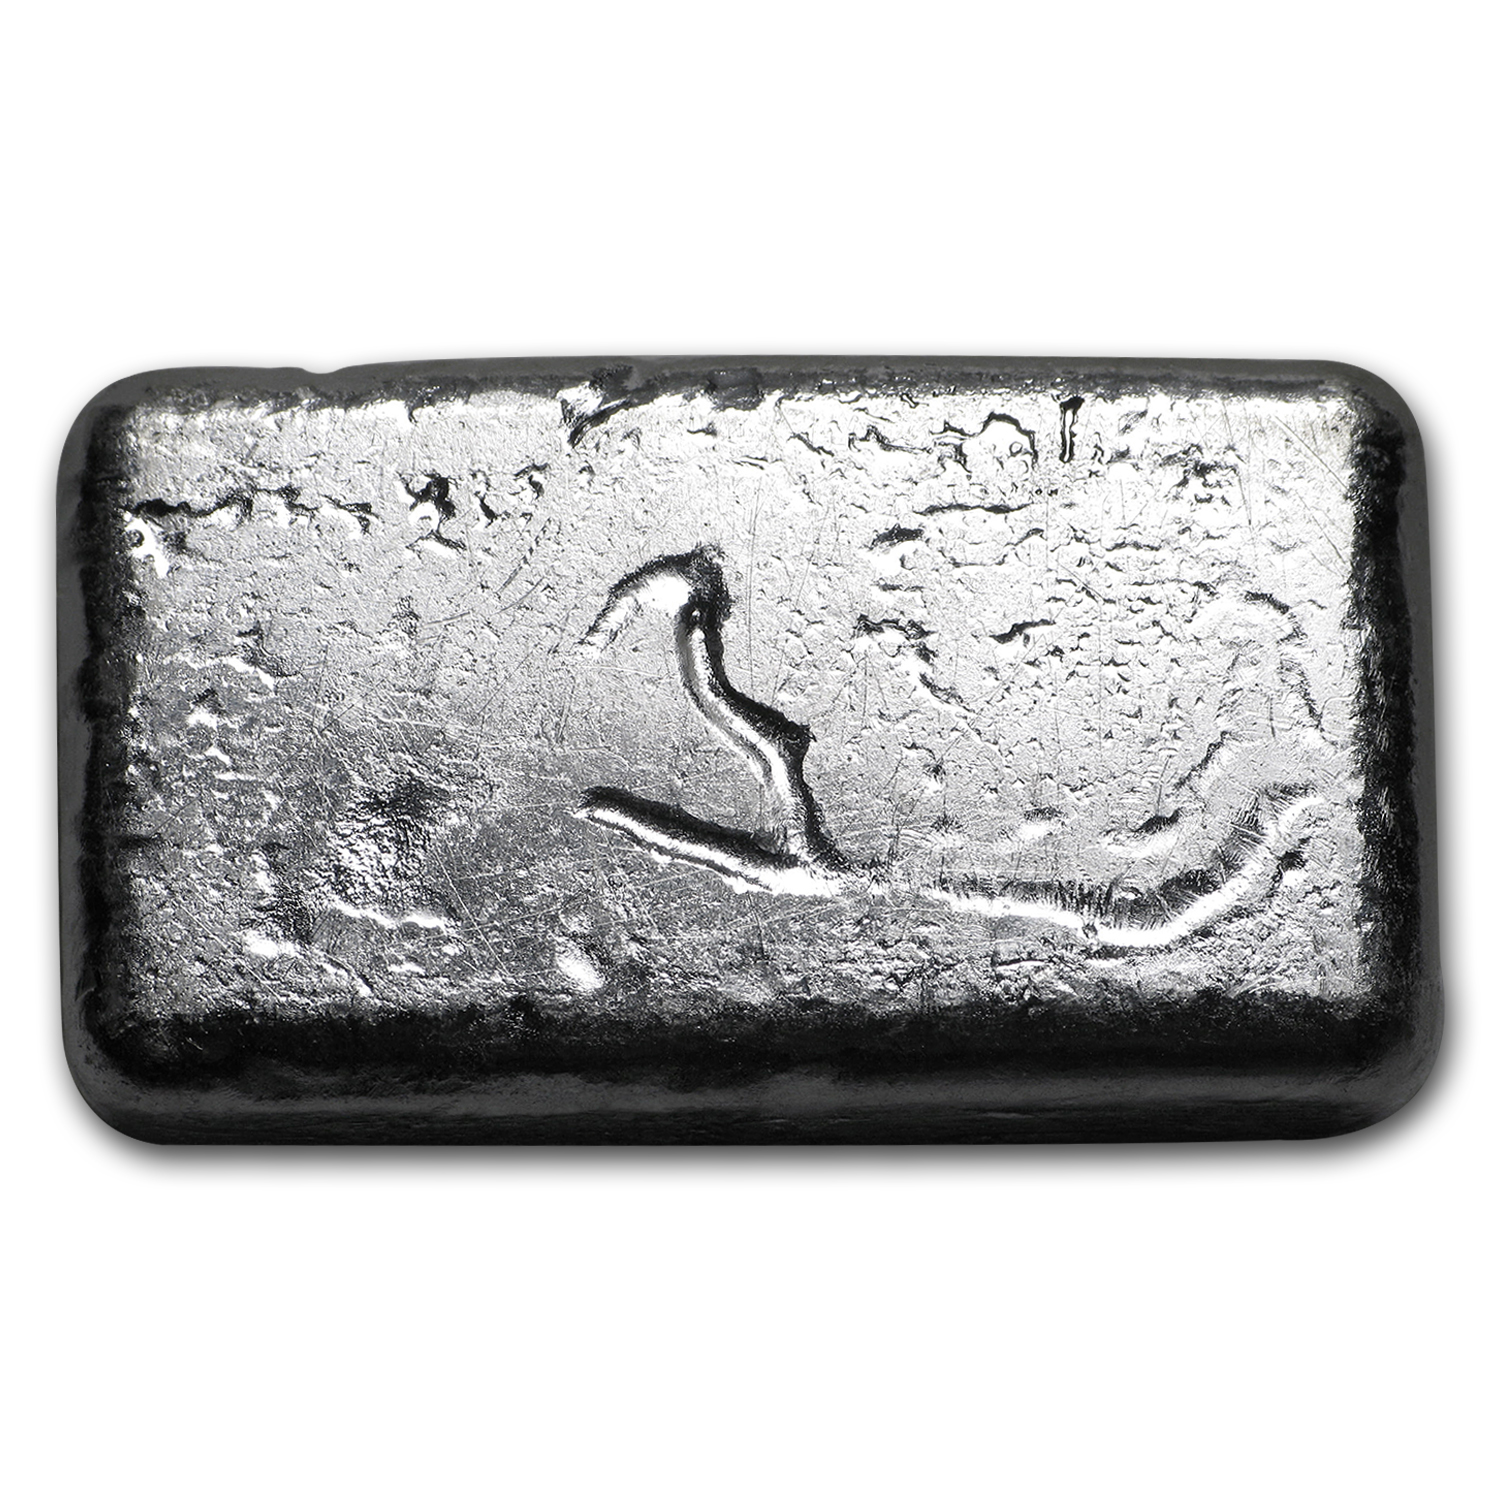 2 oz Silver Bar - Yeager Poured Silver (Bare Bones Bullion)